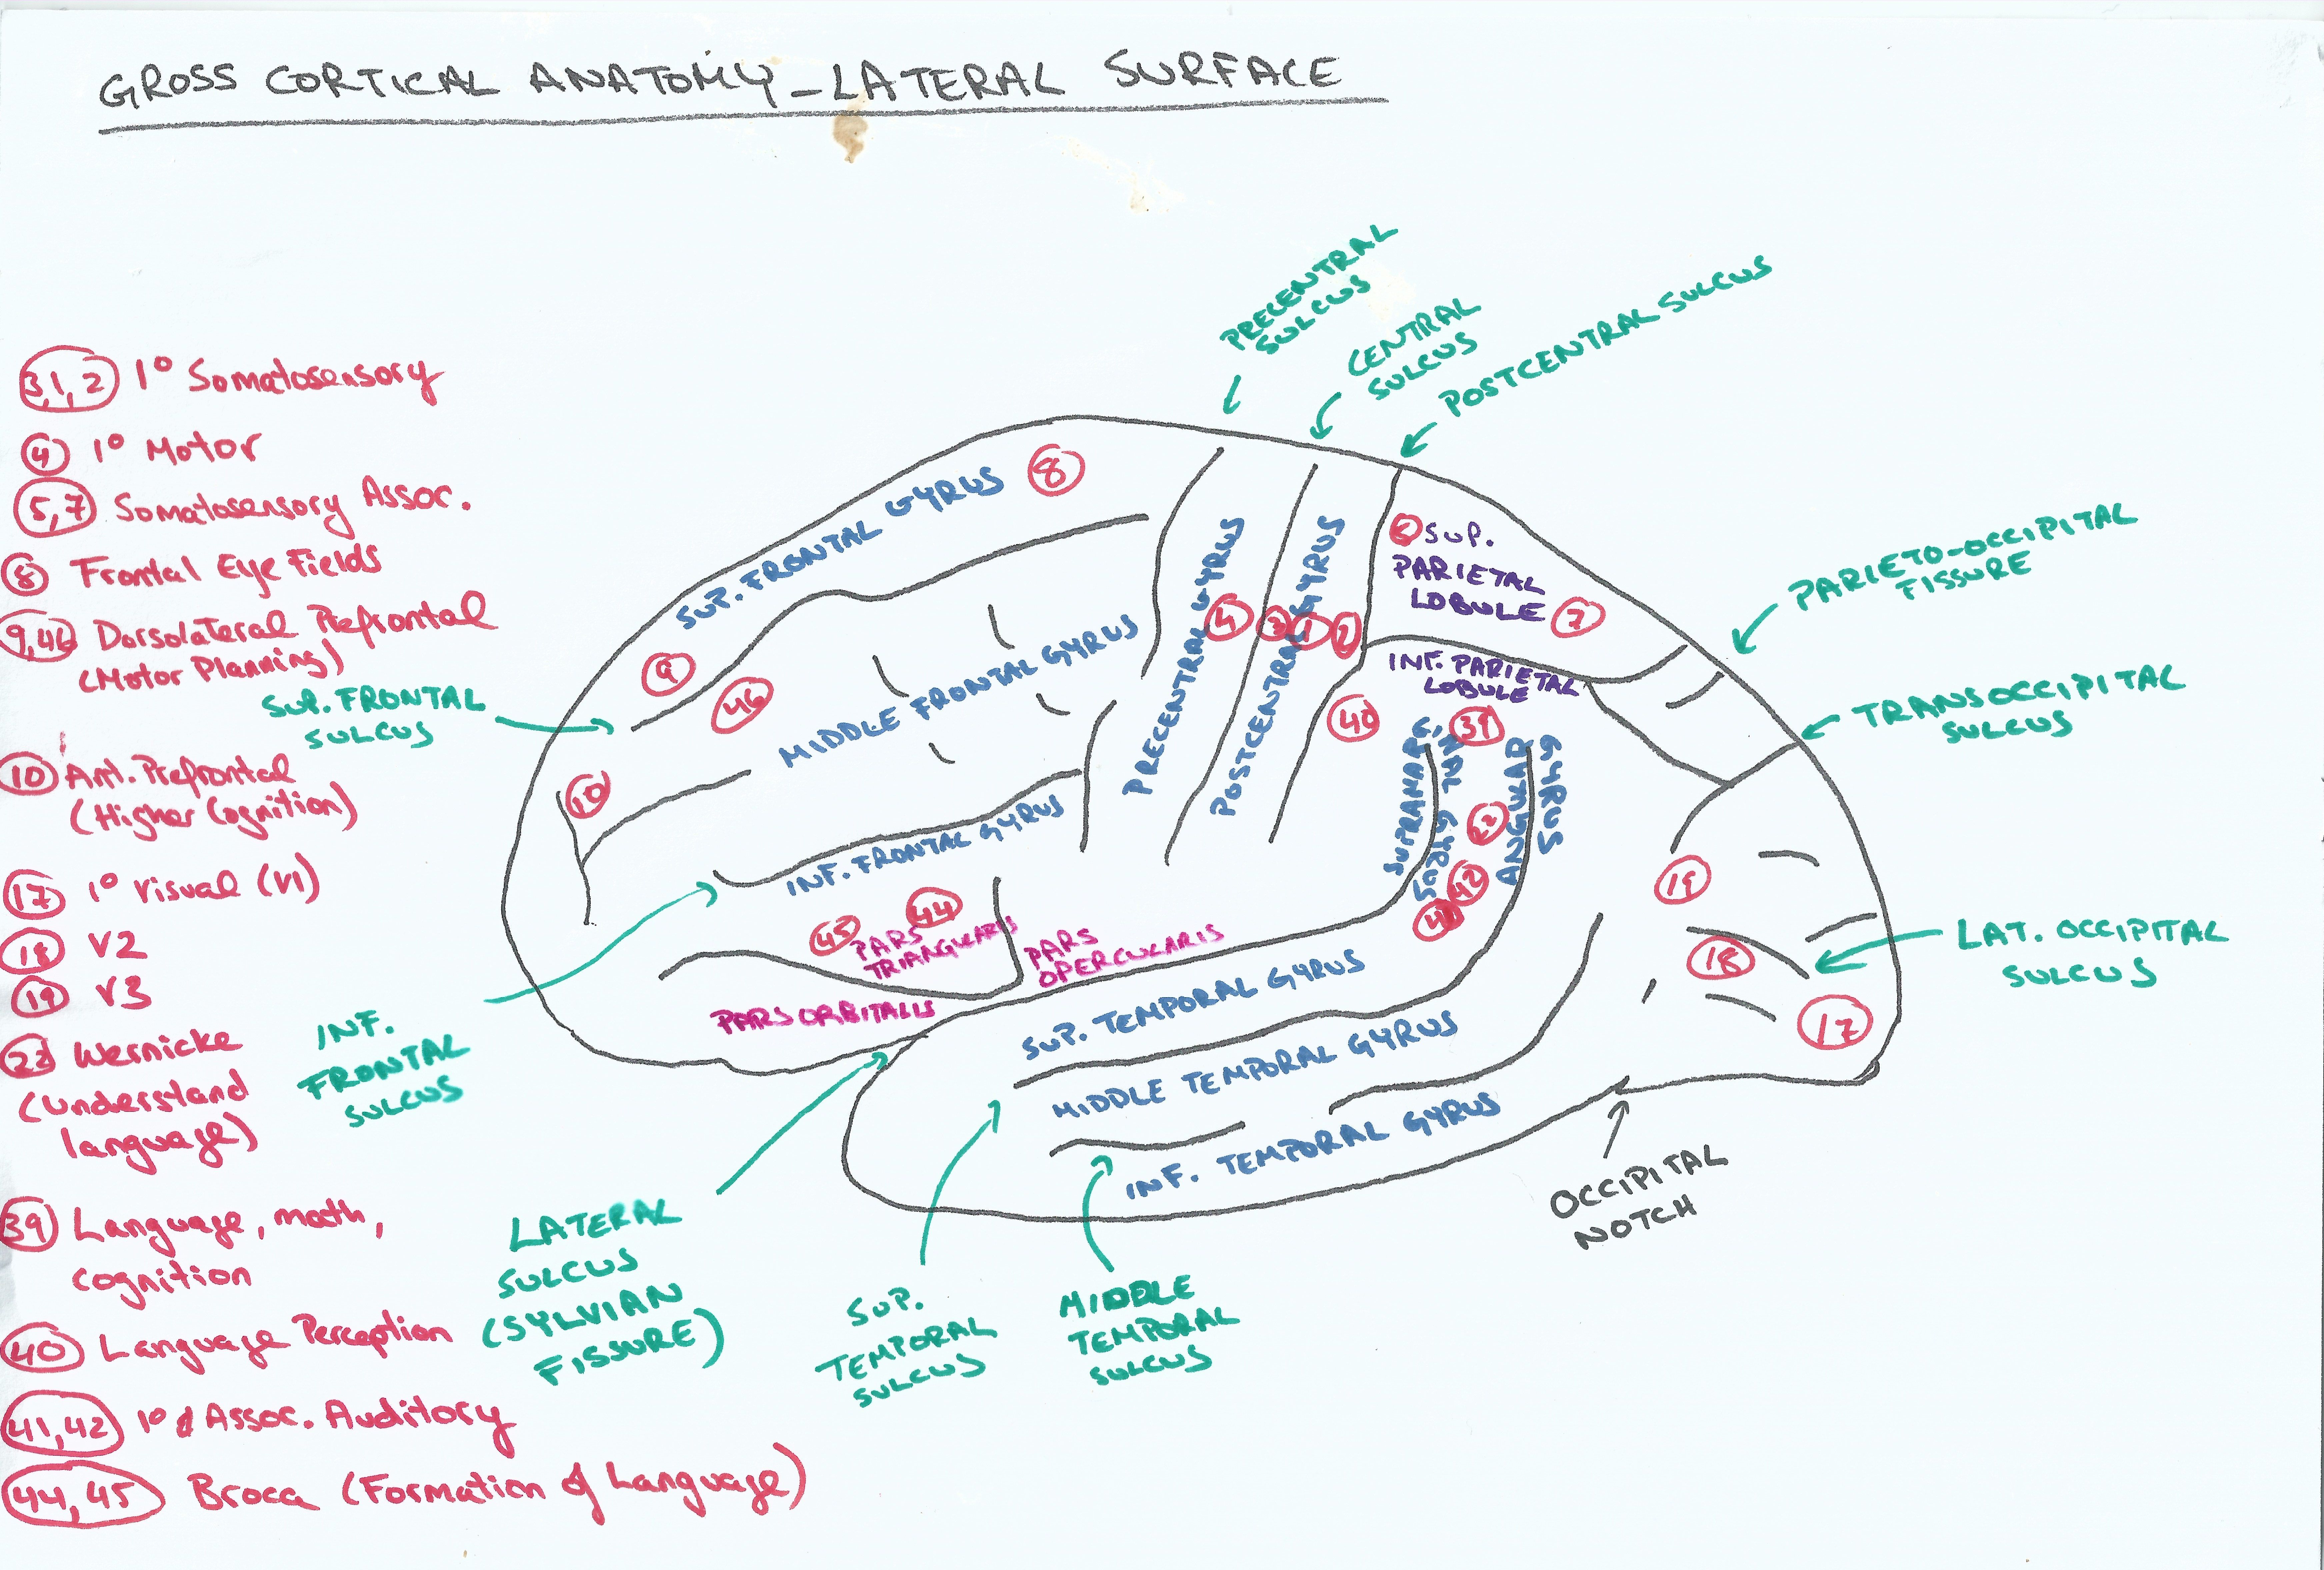 Gross Cortical Anatomy Lateral Surface w Brodmann\'s areas (+ coffee ...